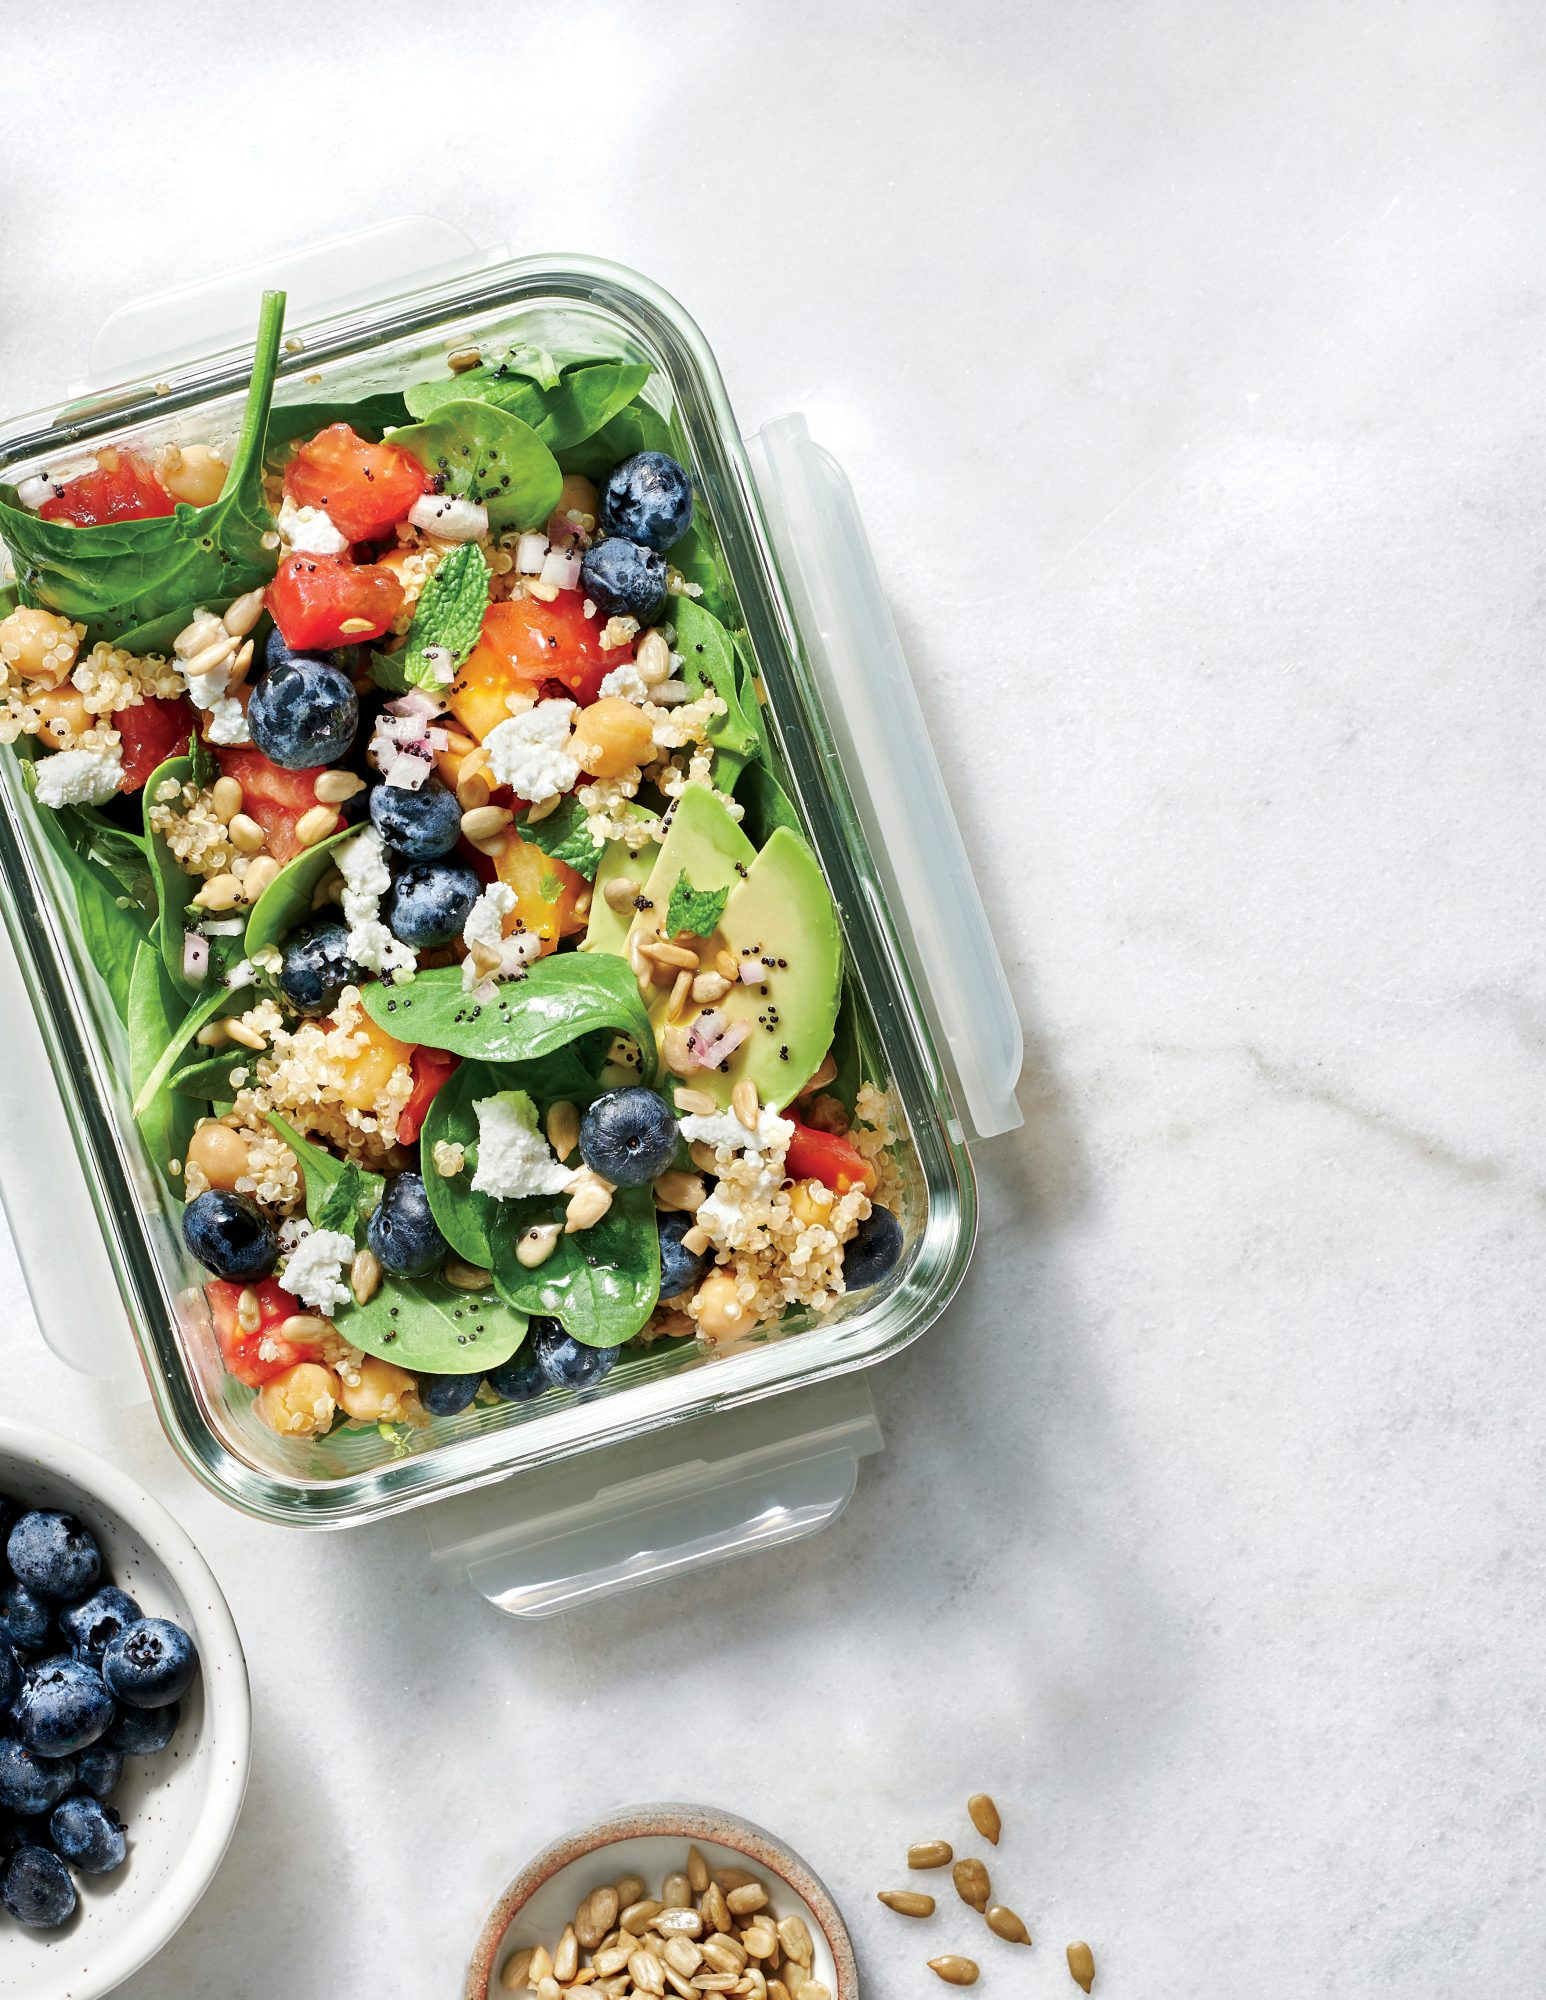 25 Healthy Lunch Recipes for All Day Energy